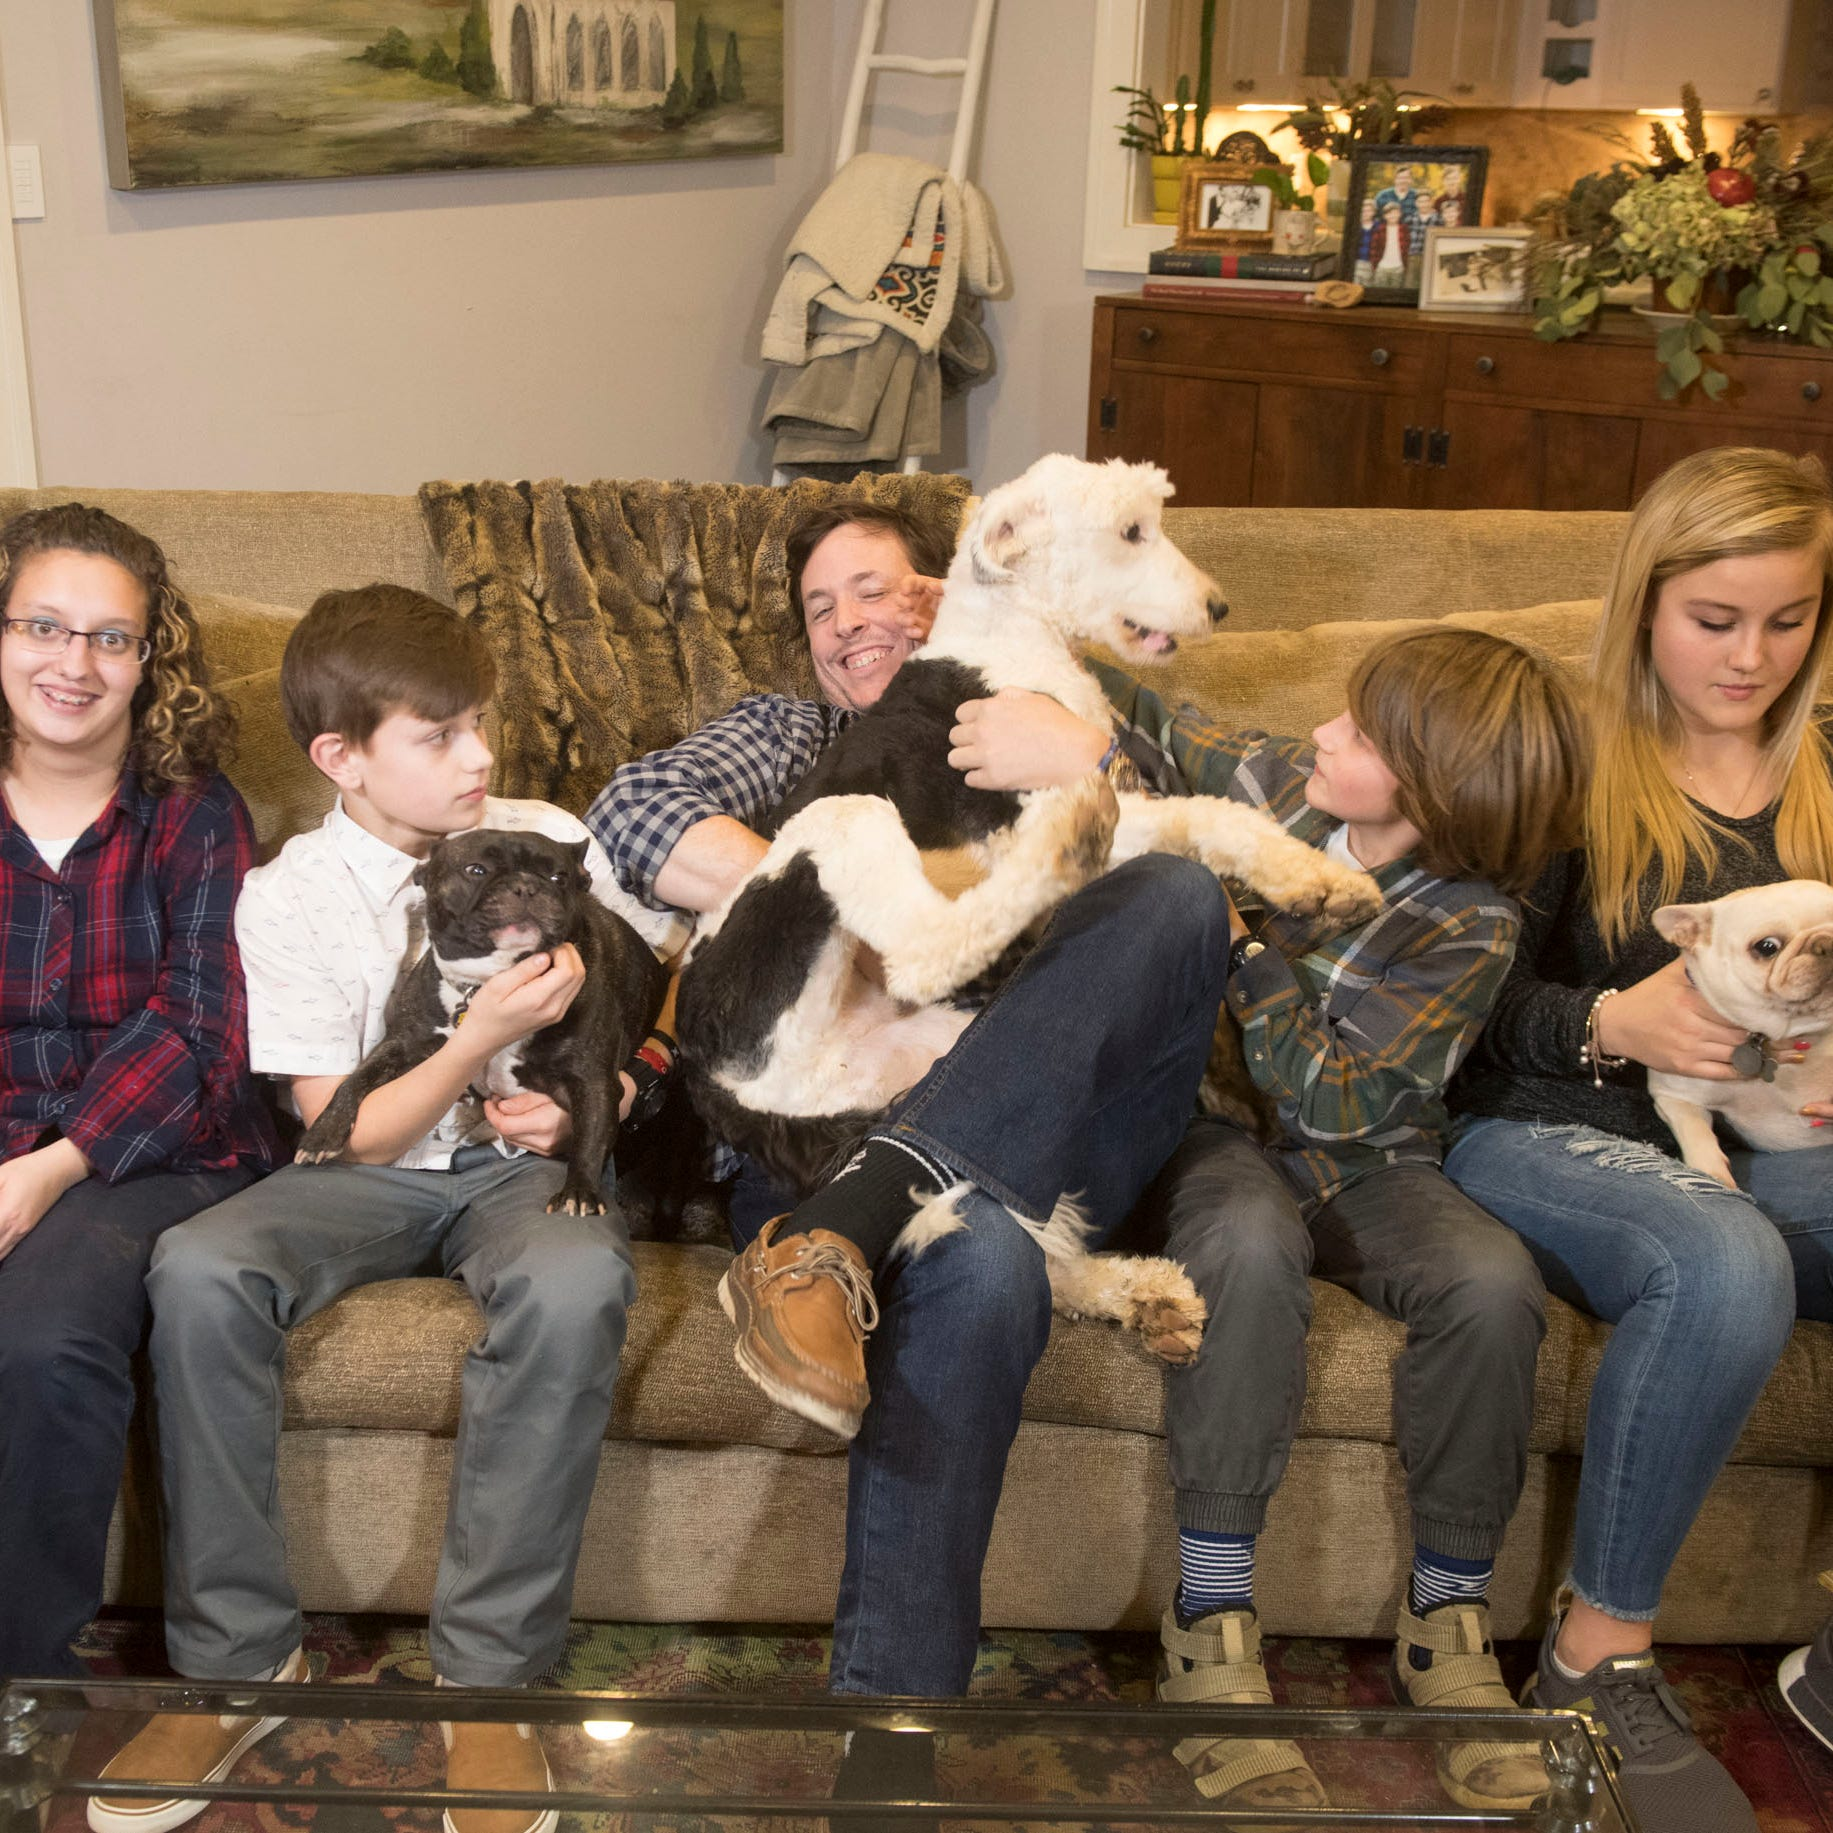 'I just knew that they would heal in my home,' Simon Hall says of his 6 adopted children